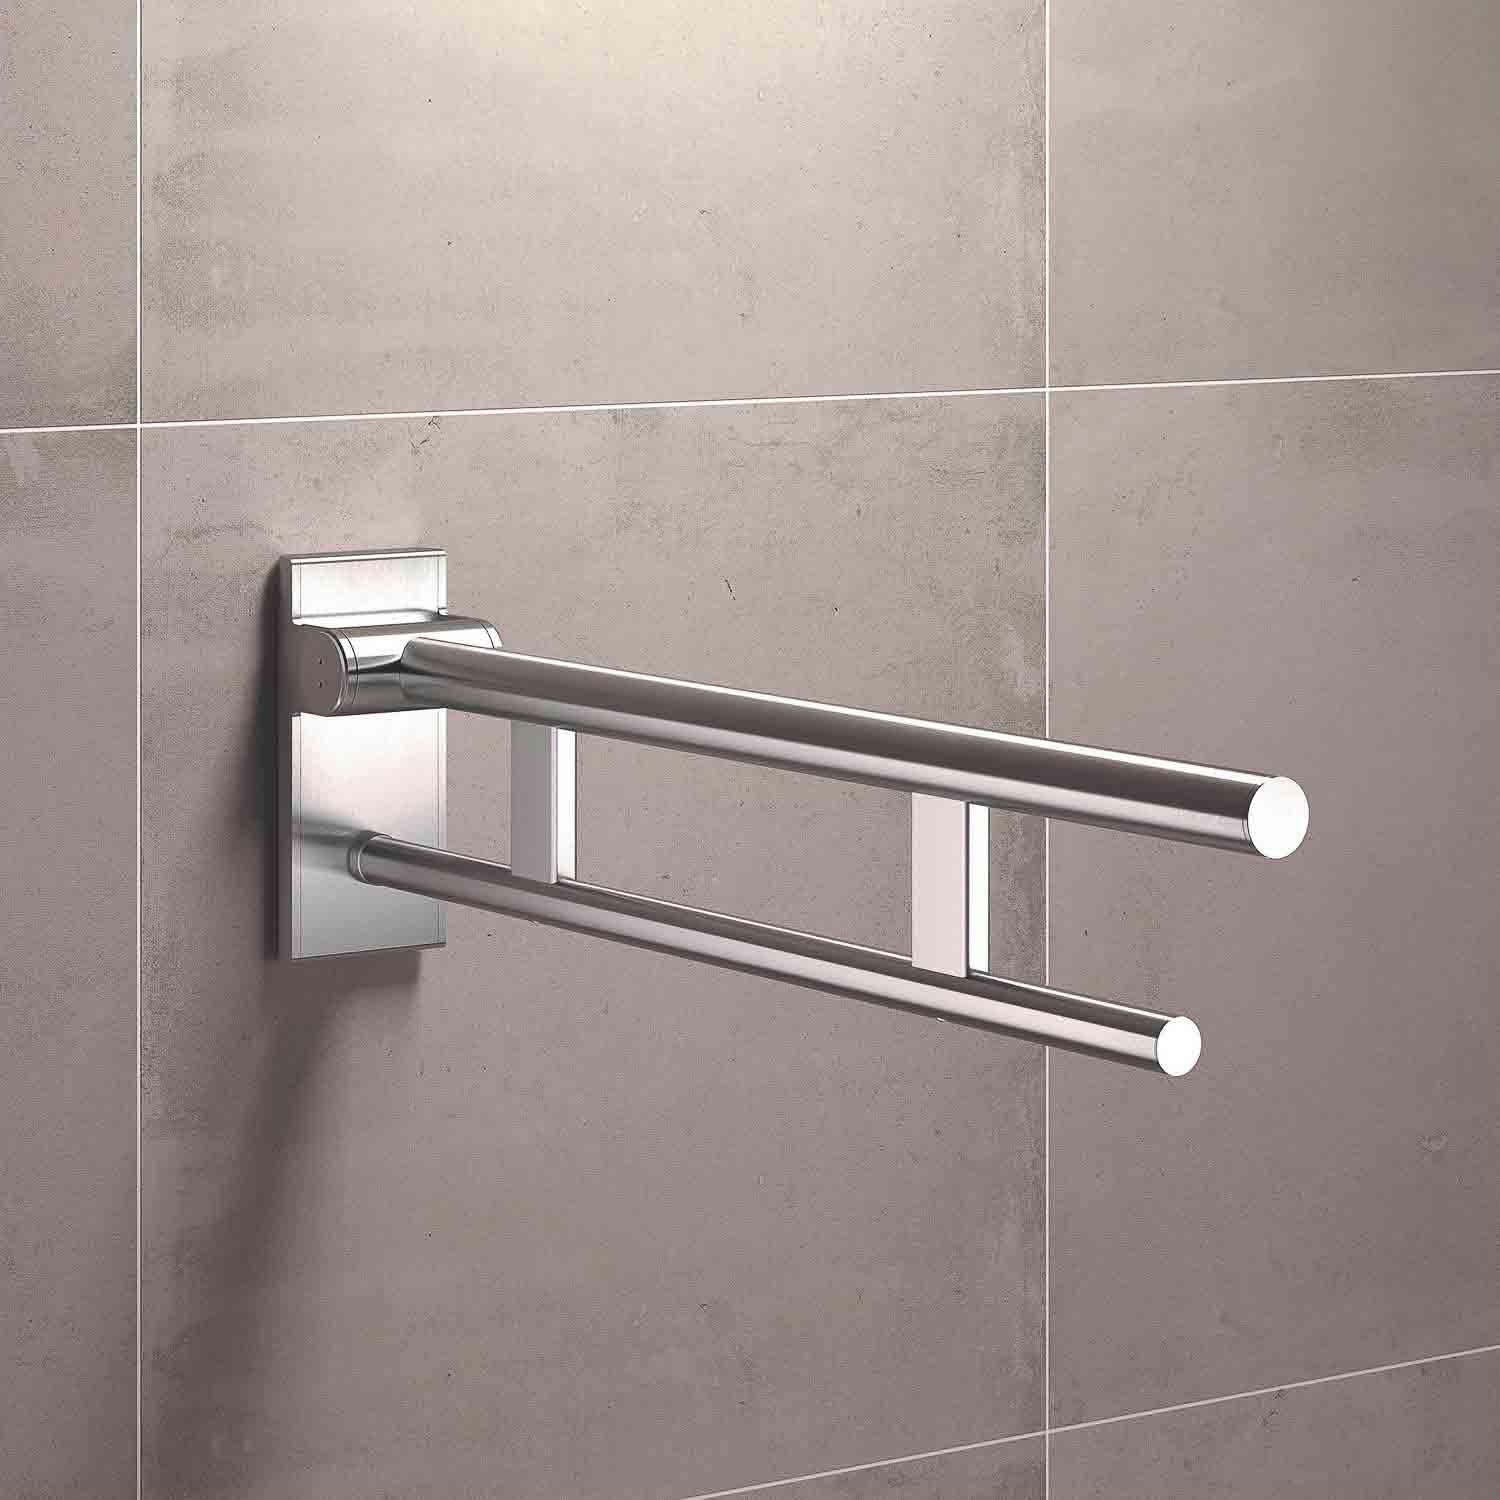 850mm Freestyle Removable Hinged Grab Rail Set with a satin steel finish lifestyle image